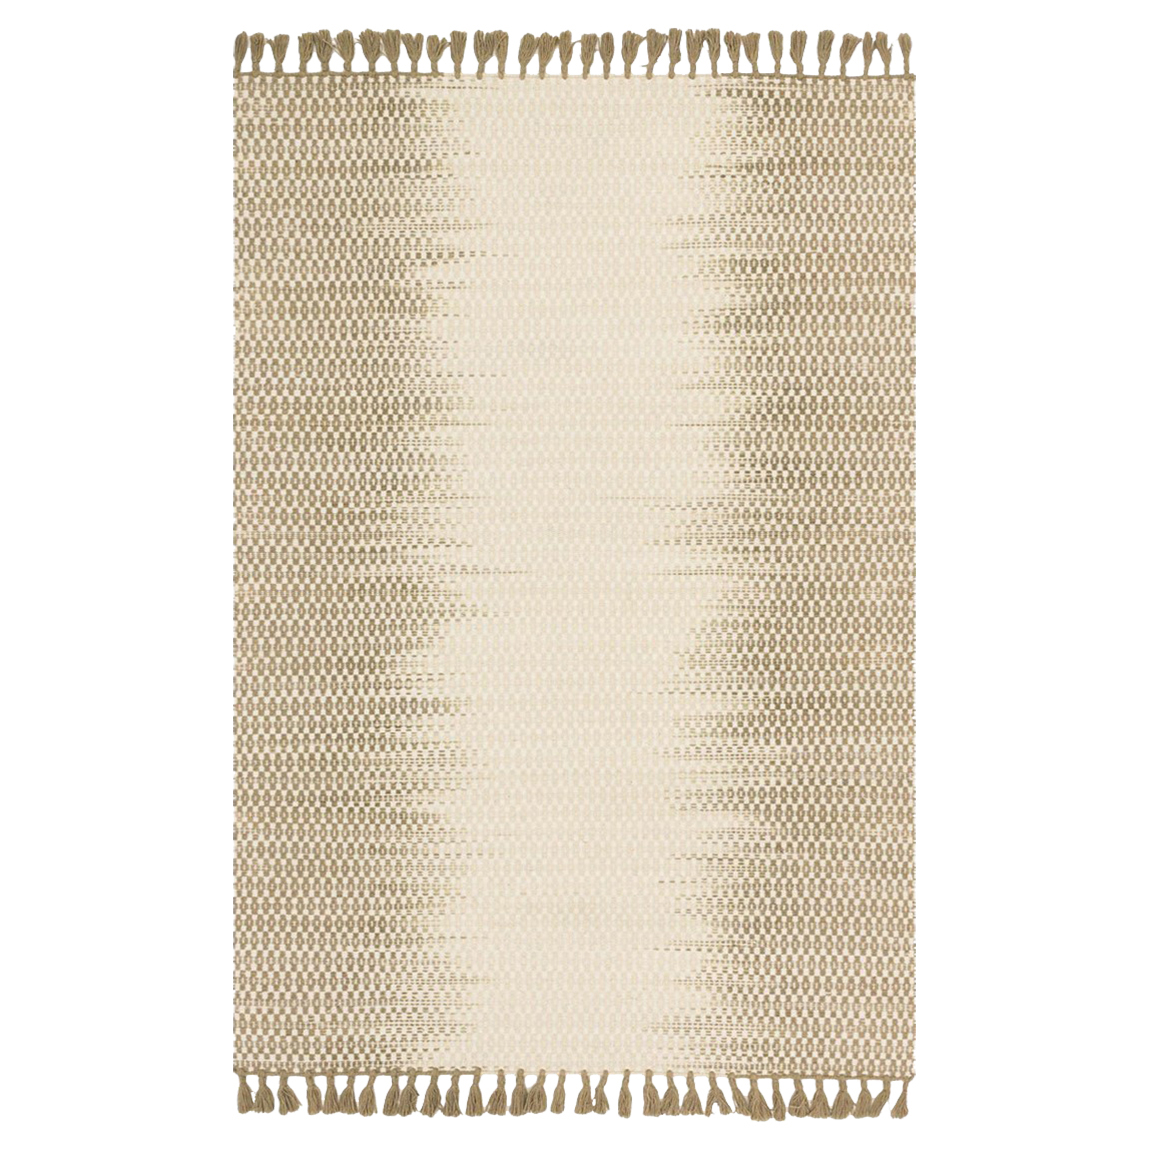 Tilly Global Olive Ombre Woven Wool Rug - 2'3x3'9